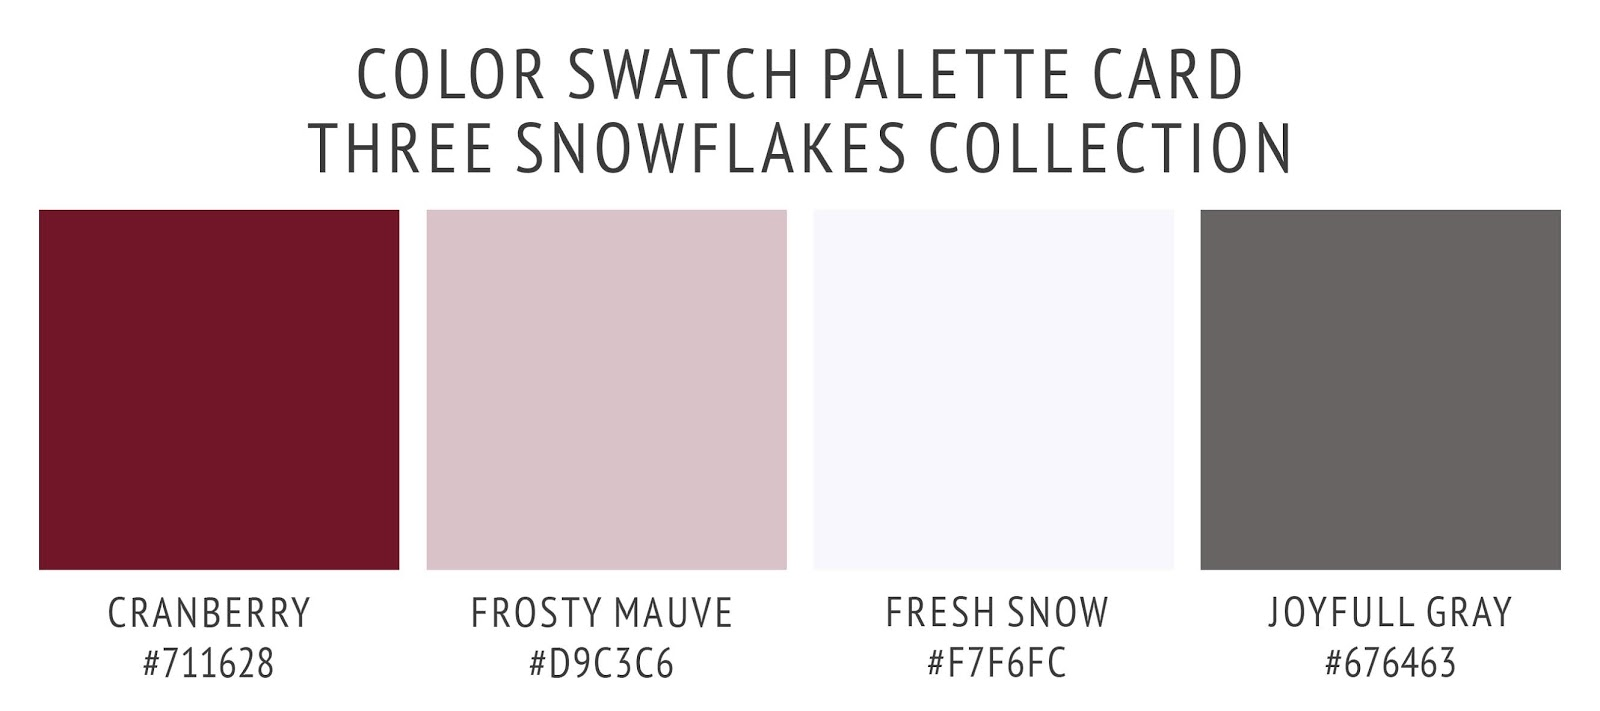 Three snowflakes holiday gifting collection's color palette card. With swatches and color hex codes. In joyful gray, fresh snow white, cranberry red, and frosty mauve color scheme.